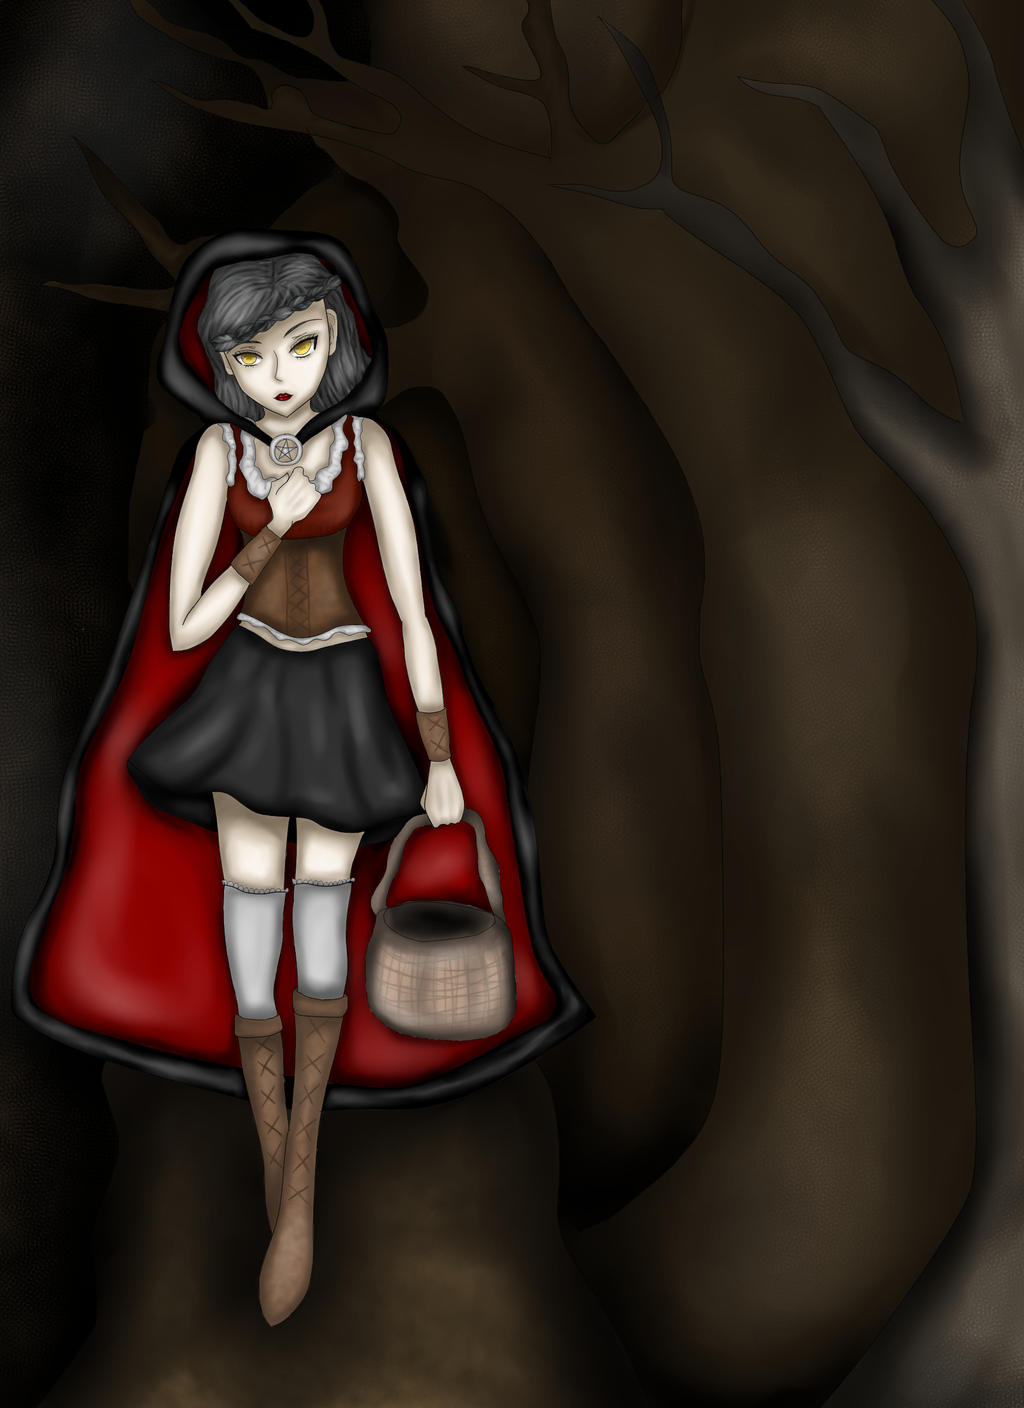 Red Riding Hood by Arqenloce